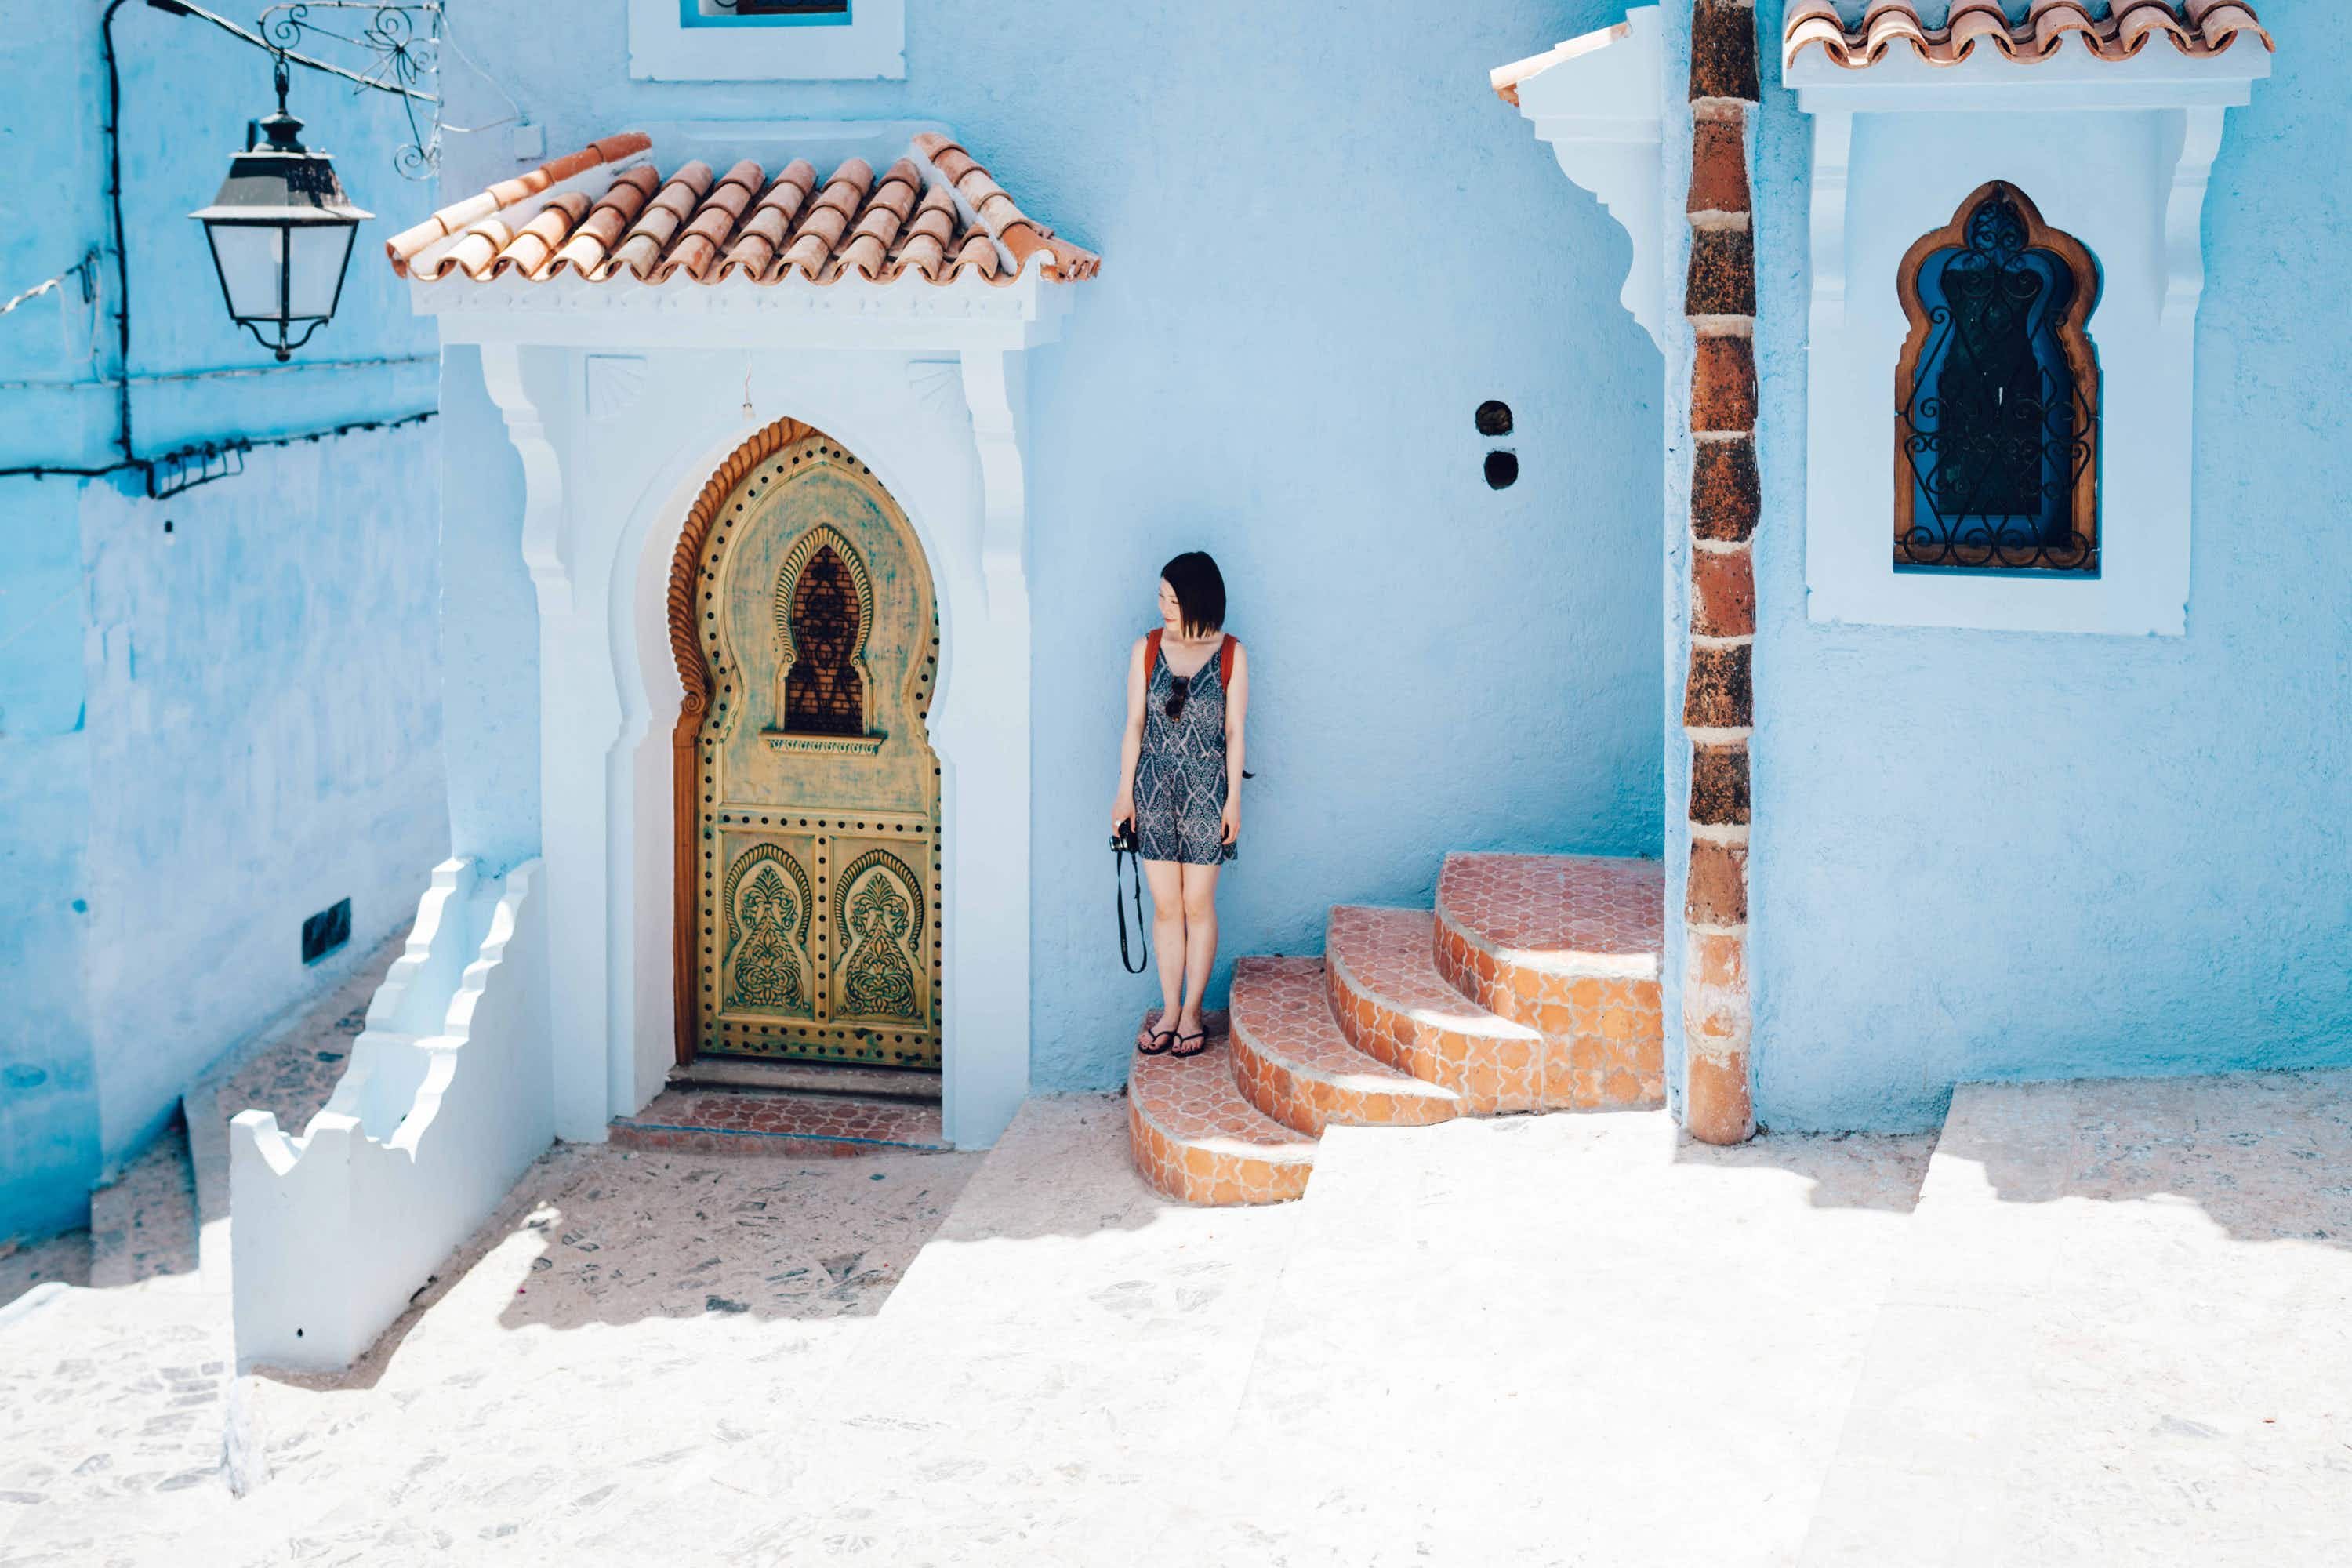 Discover the most popular travel trends according to Pinterest users